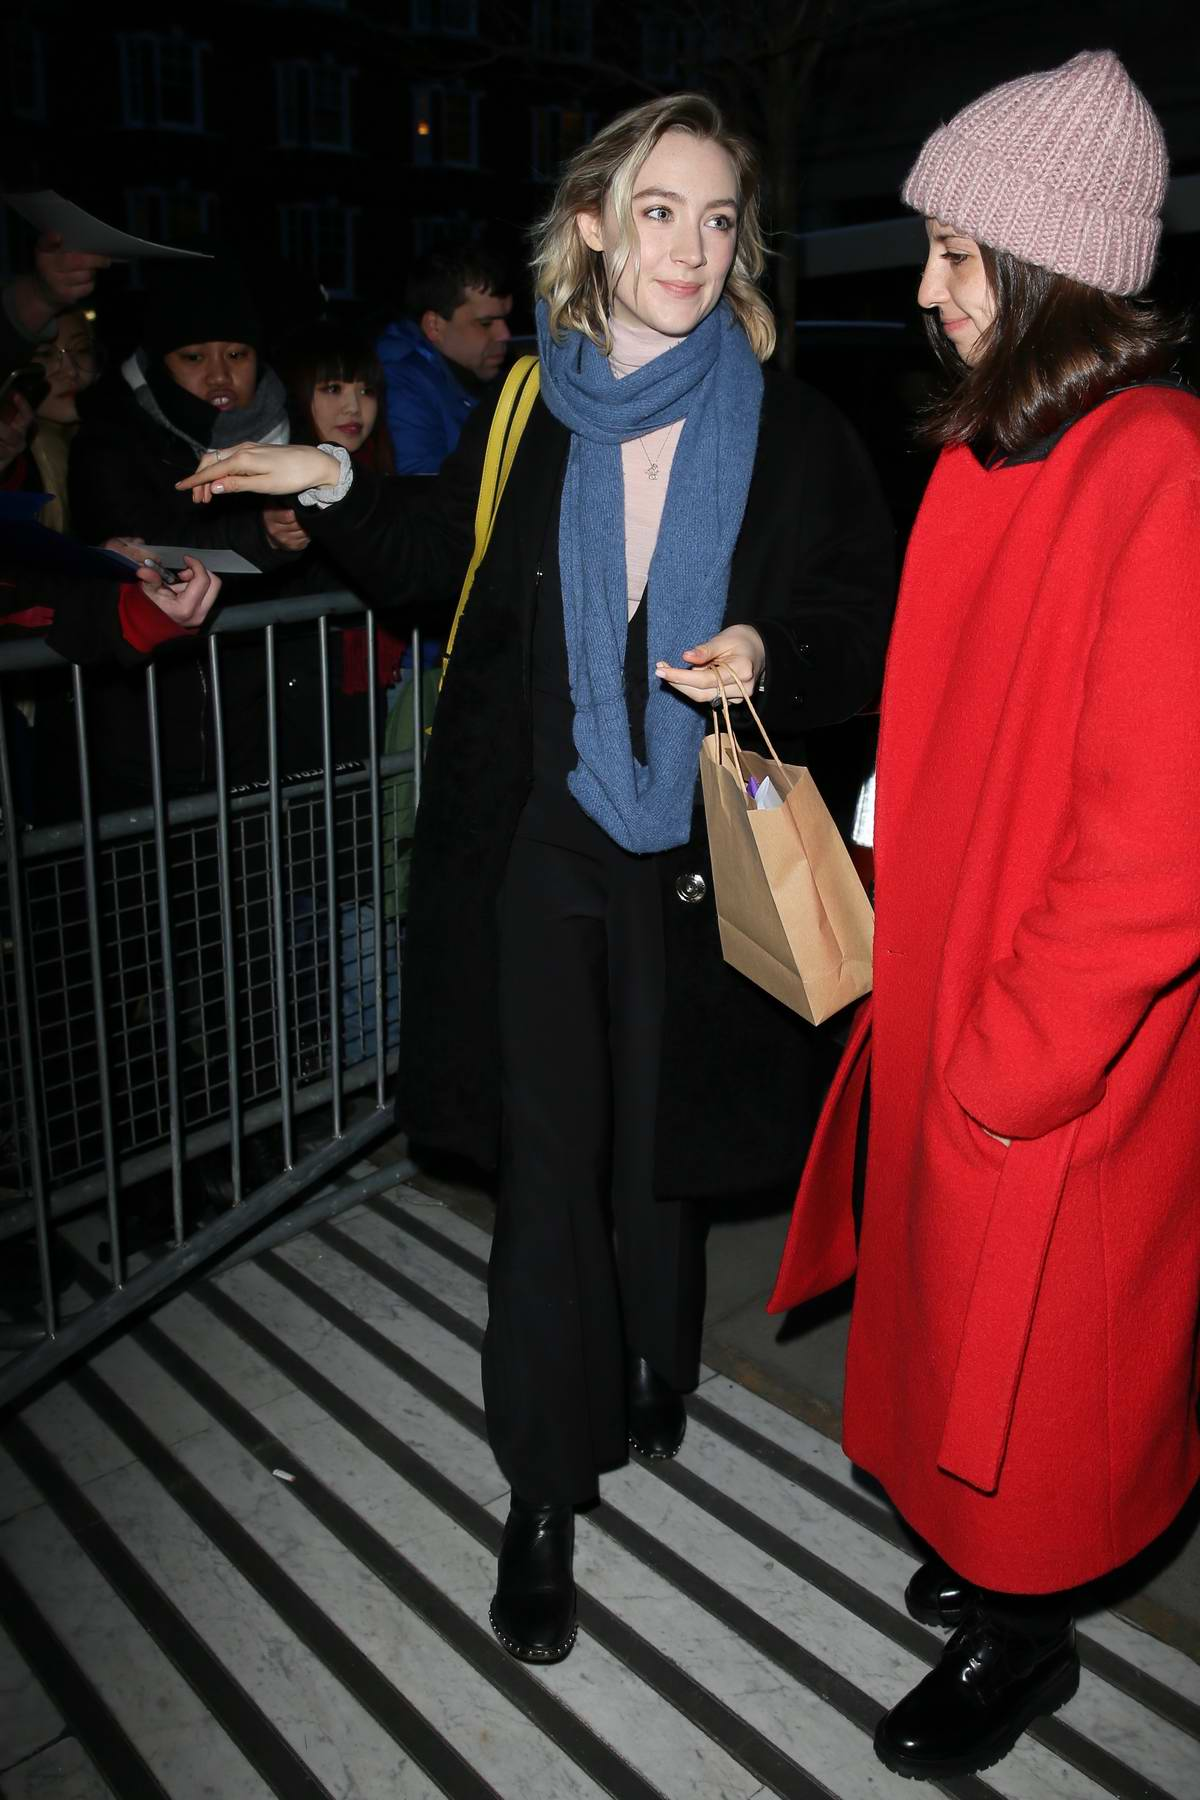 Saoirse Ronan greets fans and sign autographs as she at BBC Radio 2 in London, UK